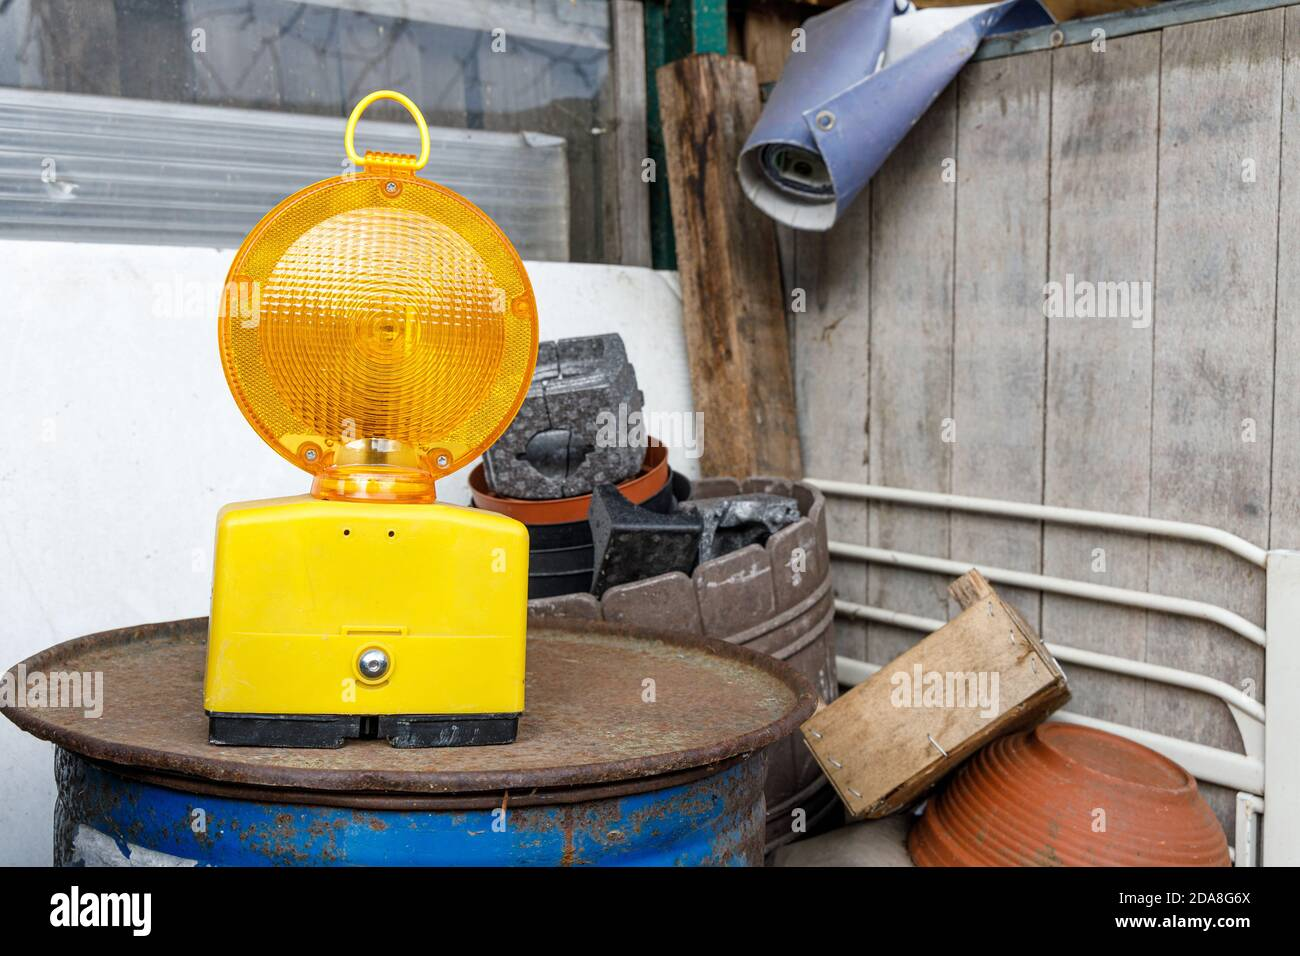 Yellow construction lamp standing on a oil barrel on a junk yard. Symbol of construction in a chaotic situation, use as site not found image. Stock Photo